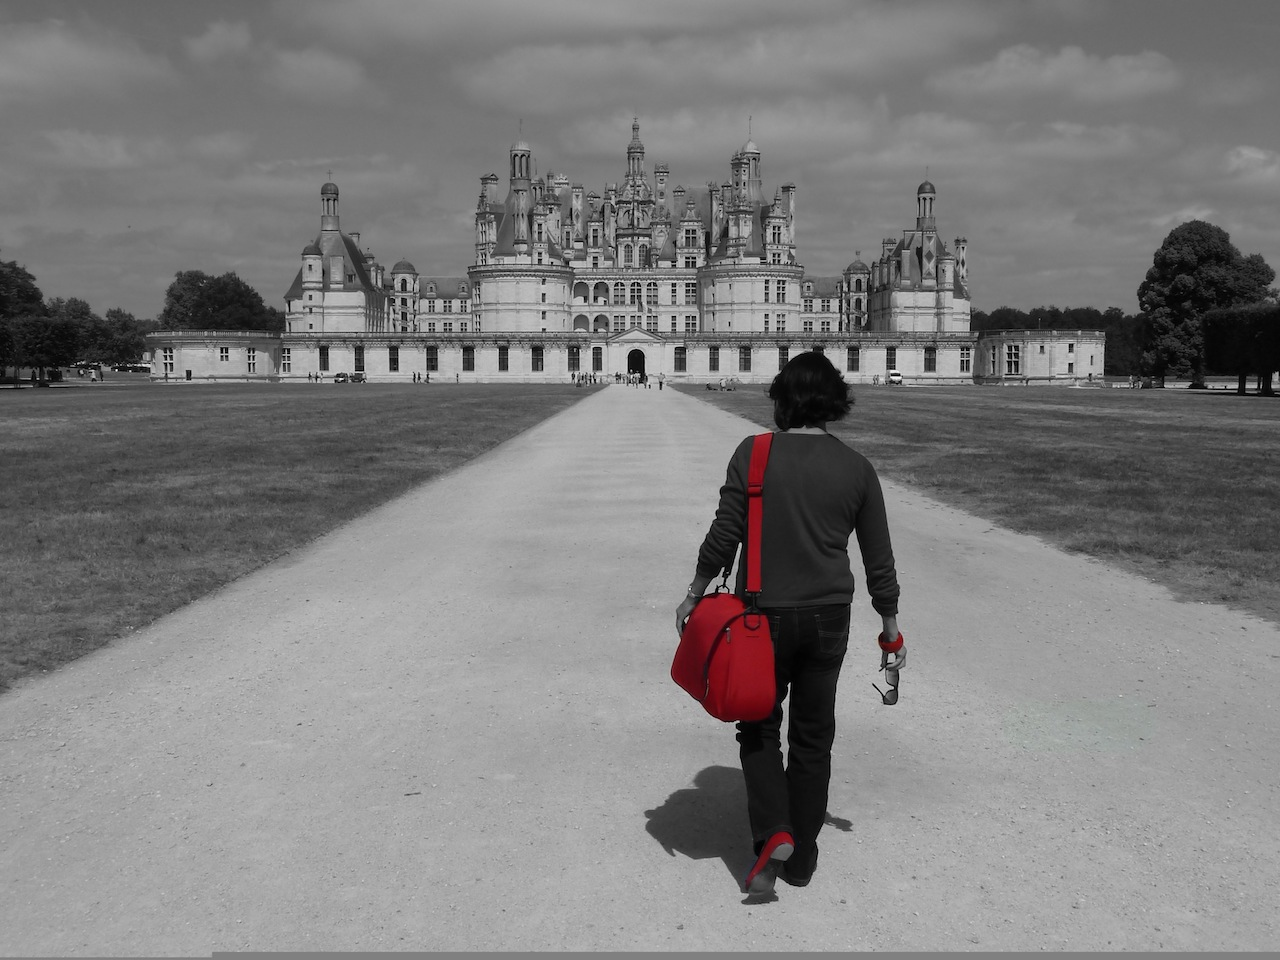 A woman with a red bag and shoes walking toward a very grand chateau in Chambord, France